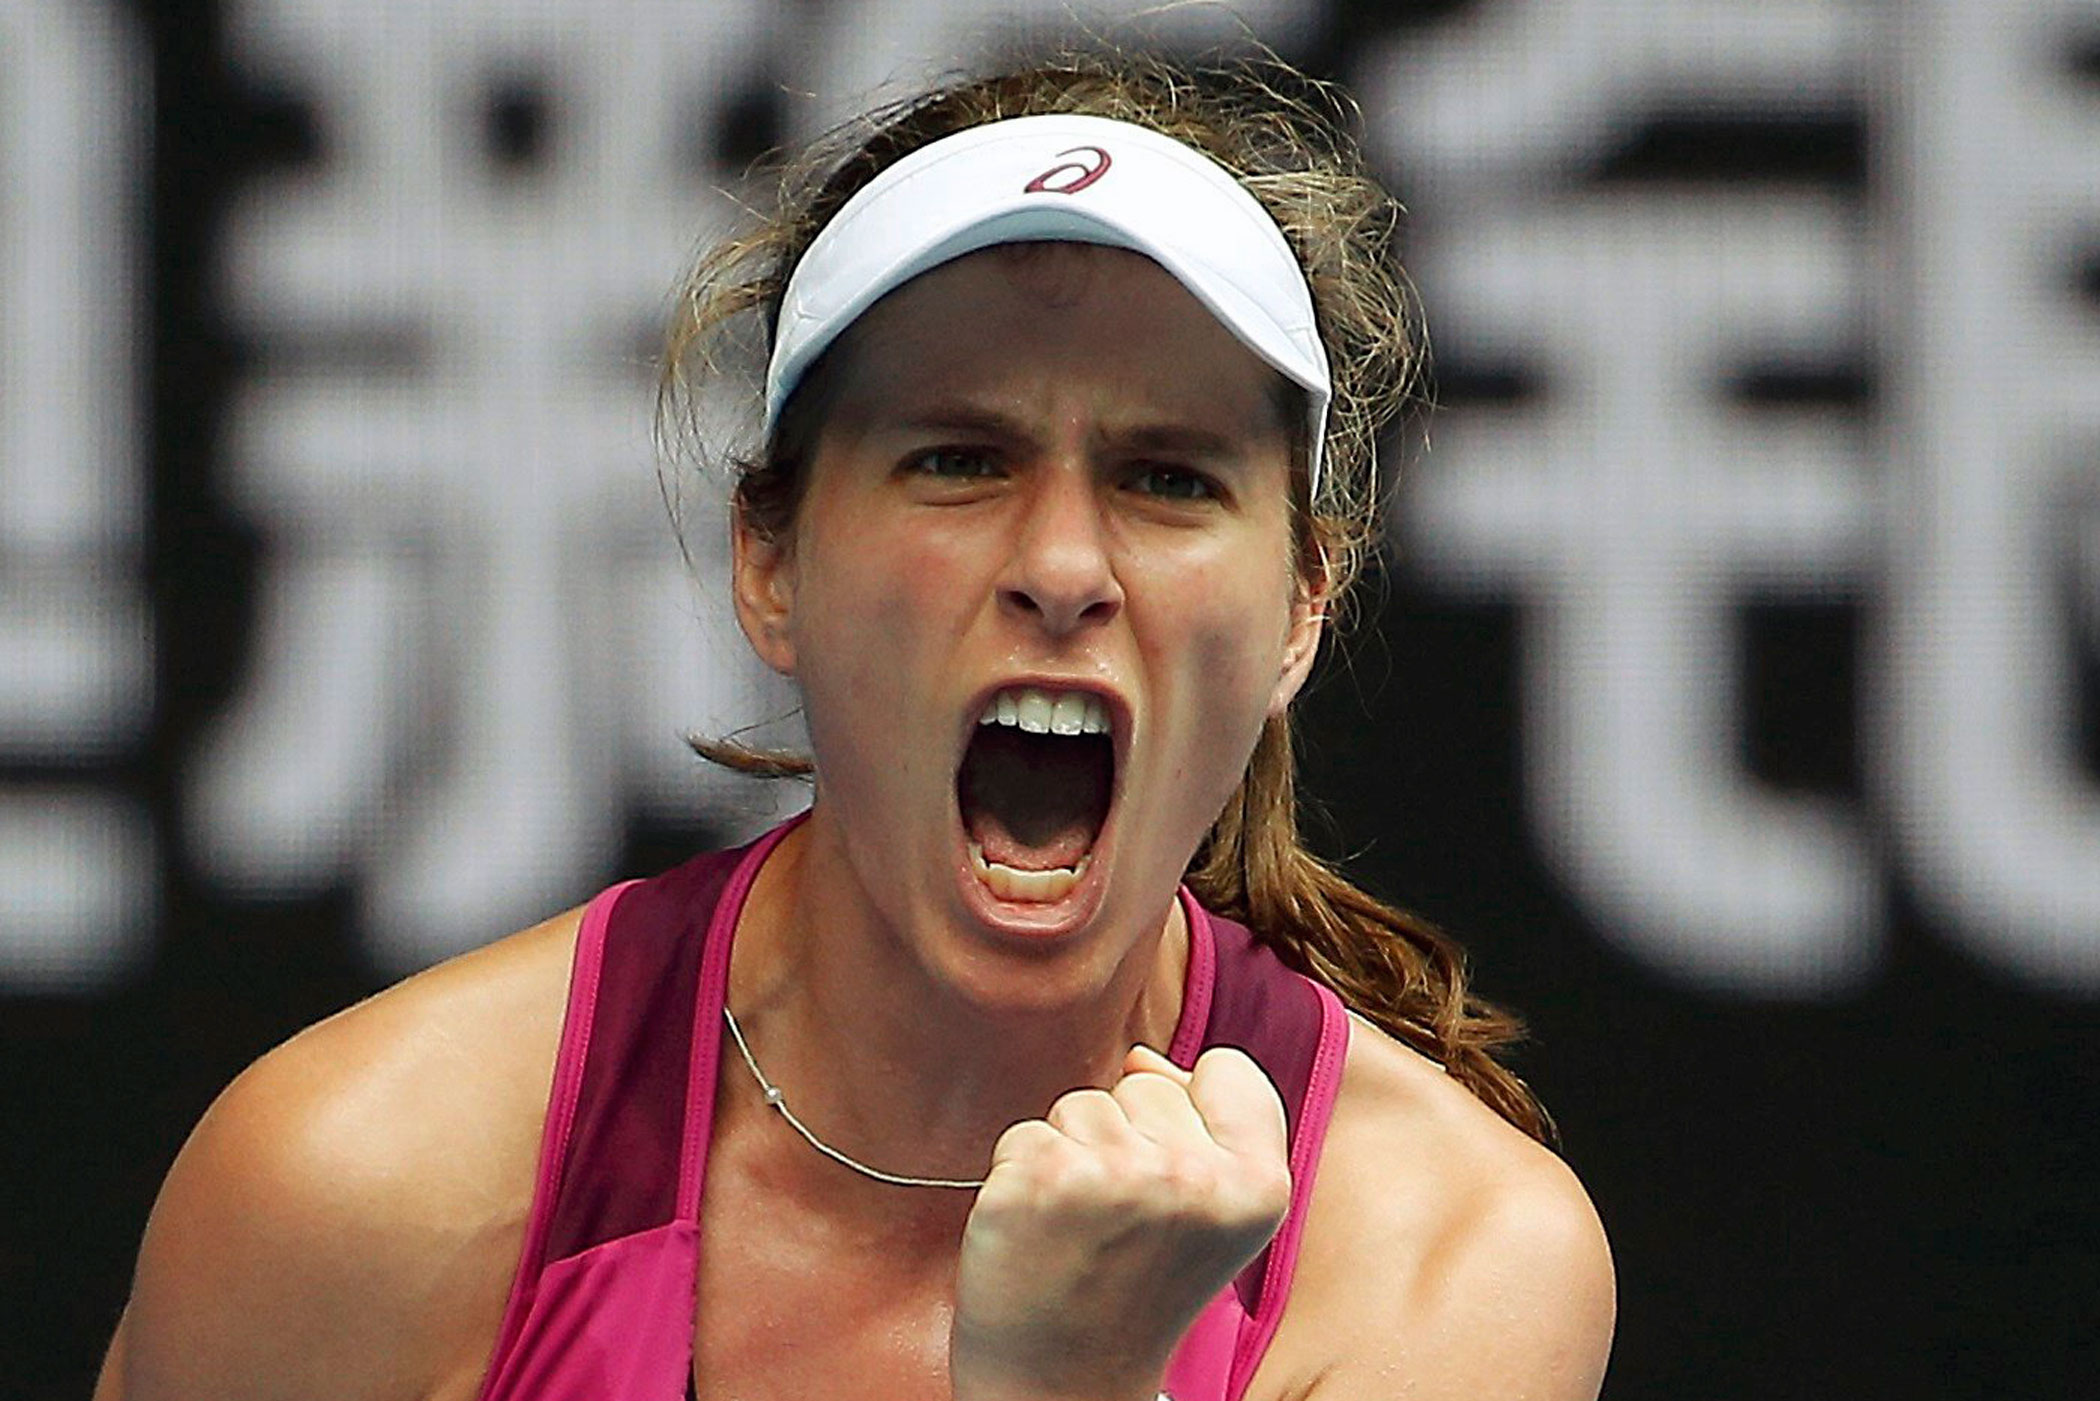 Britain's Johanna Konta celebrates winning the first in her quarter-final match against China's Zhang Shuai on Jan. 27.